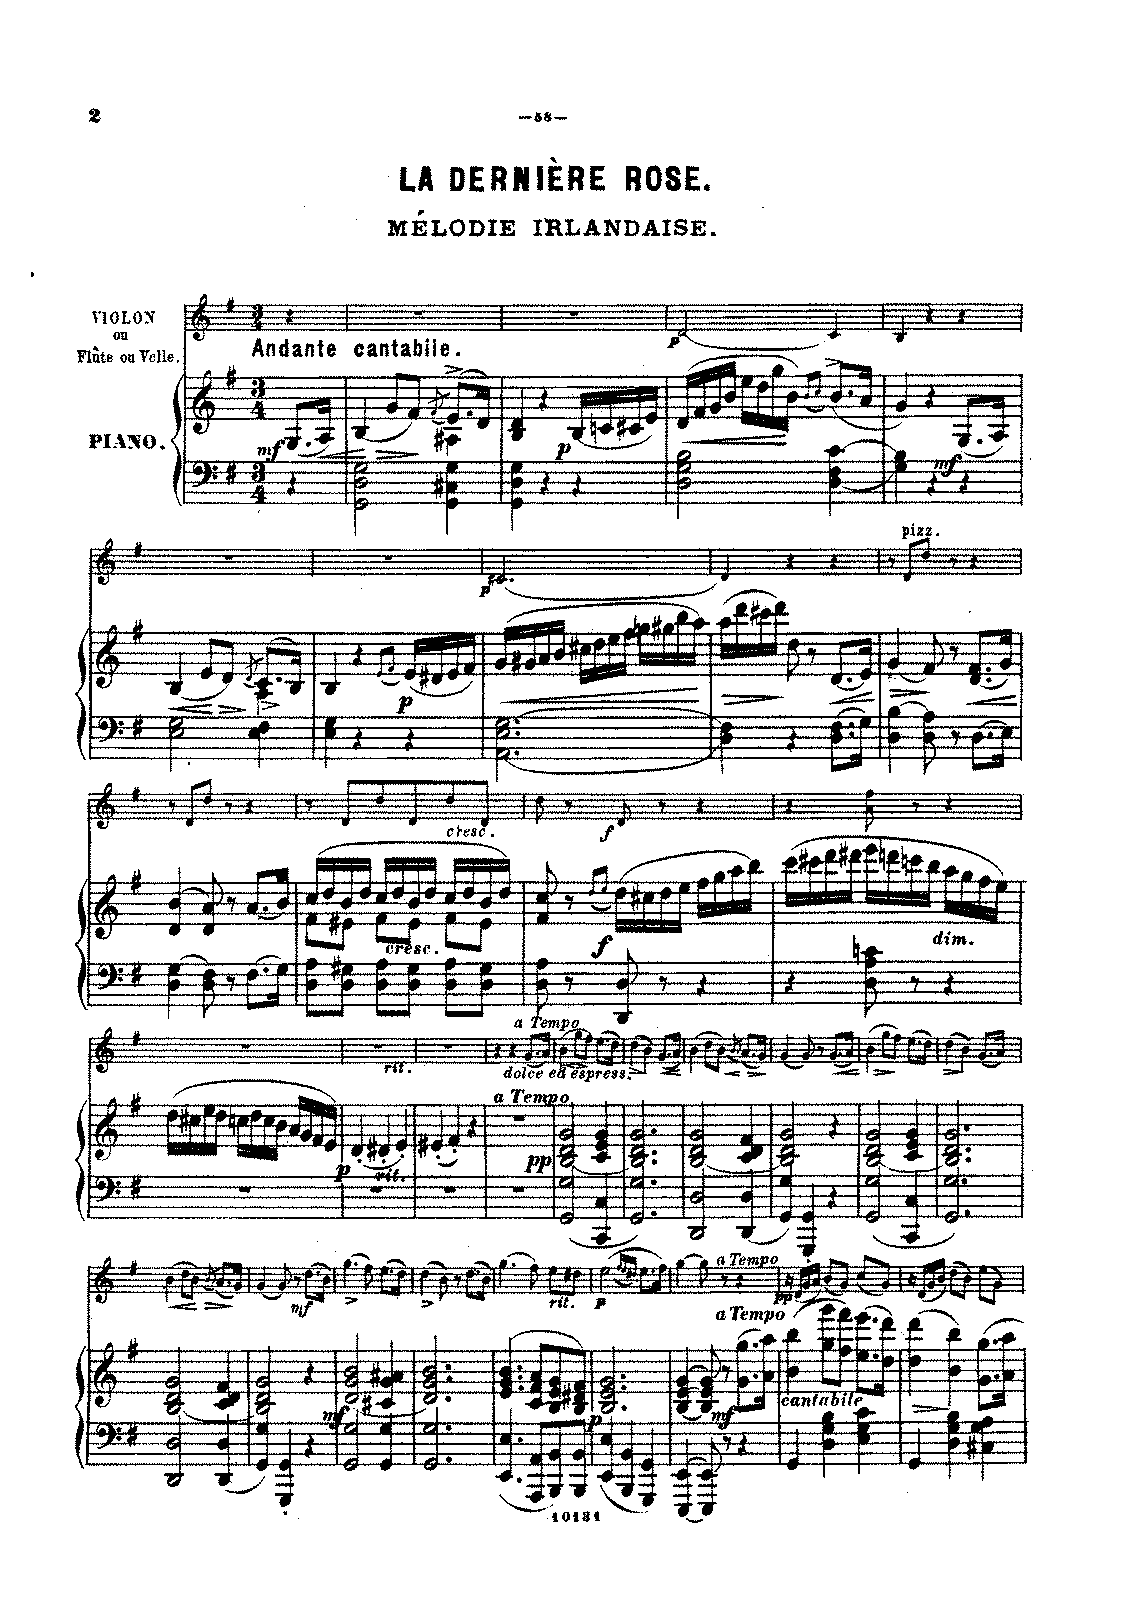 PMLP133202-The Last Rose for Cello and Piano score.pdf